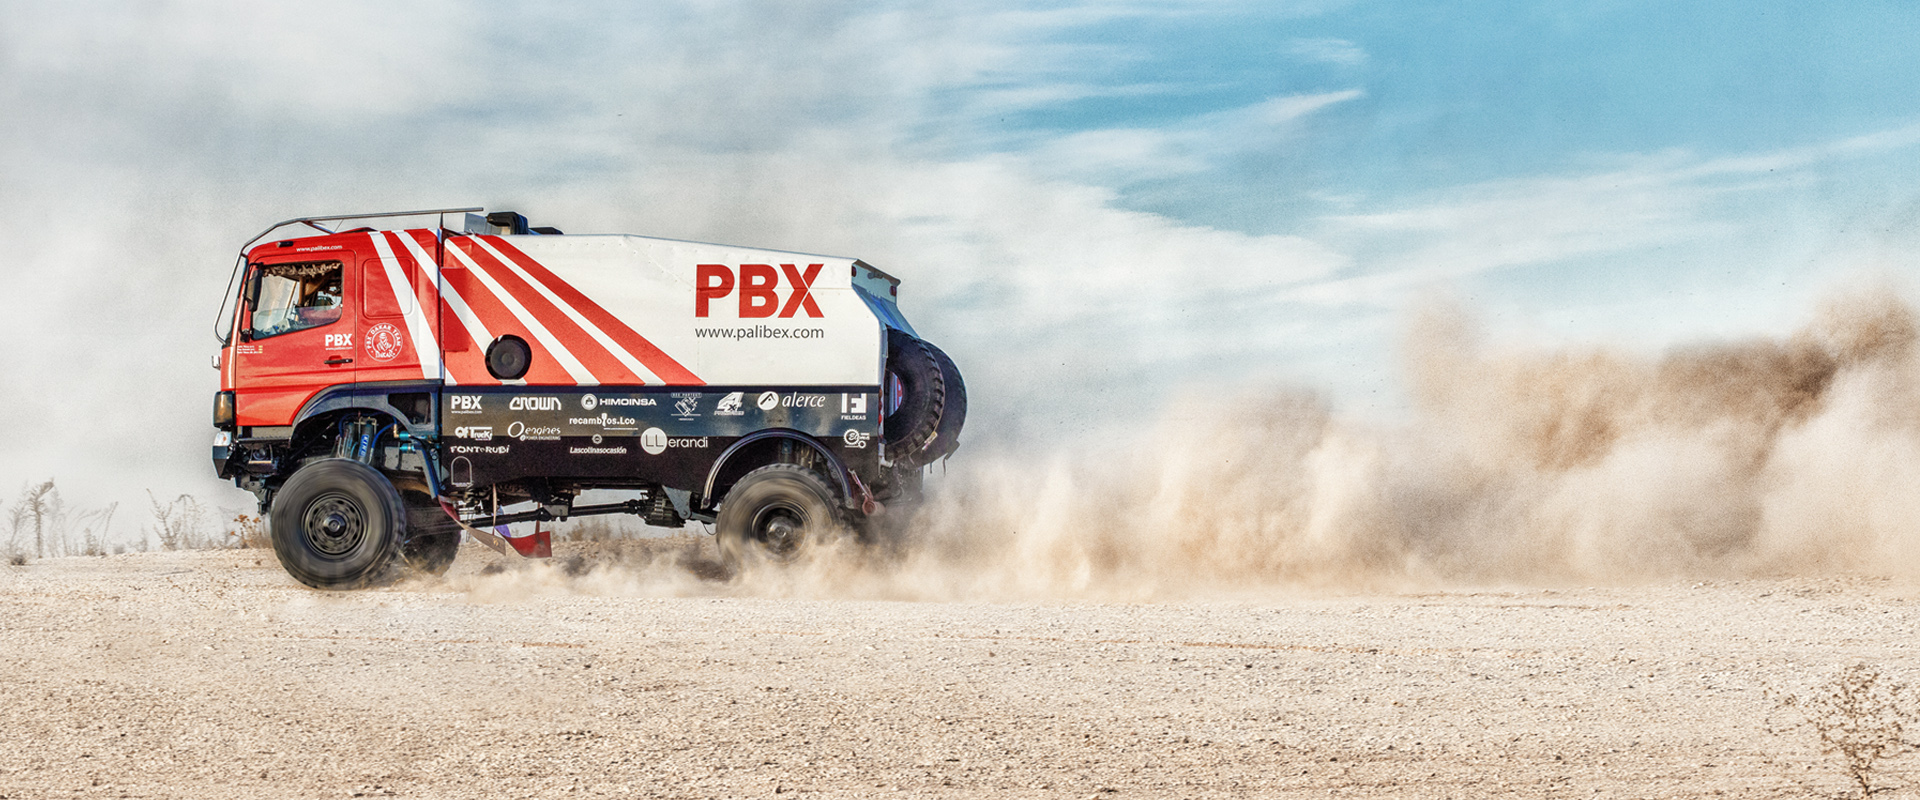 Sigue al PBX Dakar Team 2019